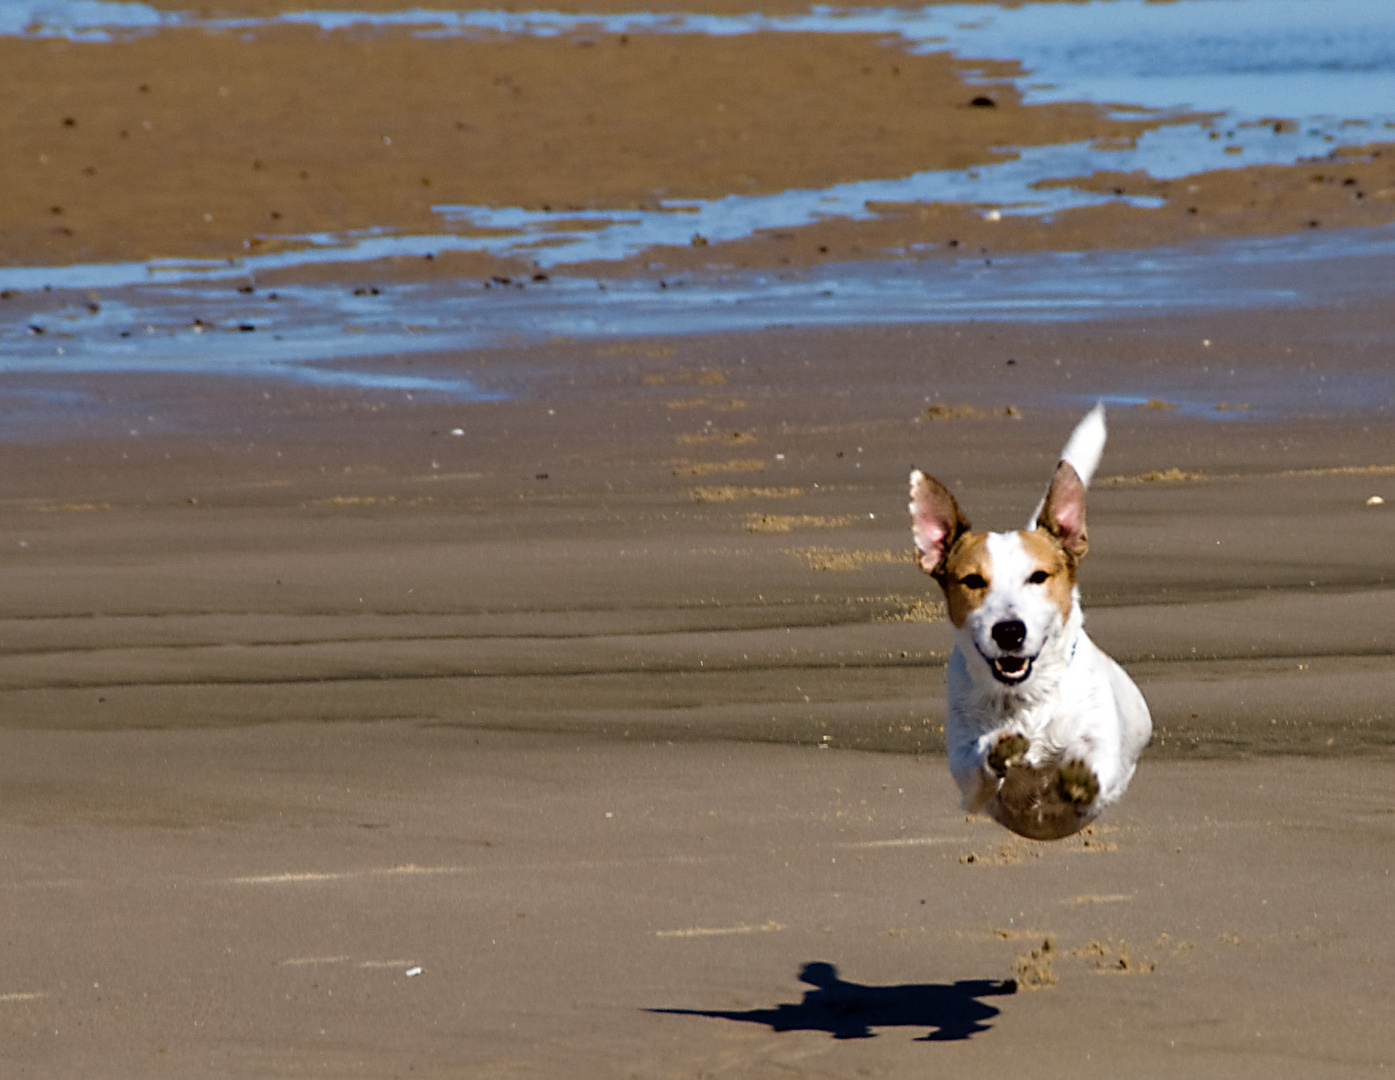 The Flying dog, the strange case of the dog who jumped over his shadow